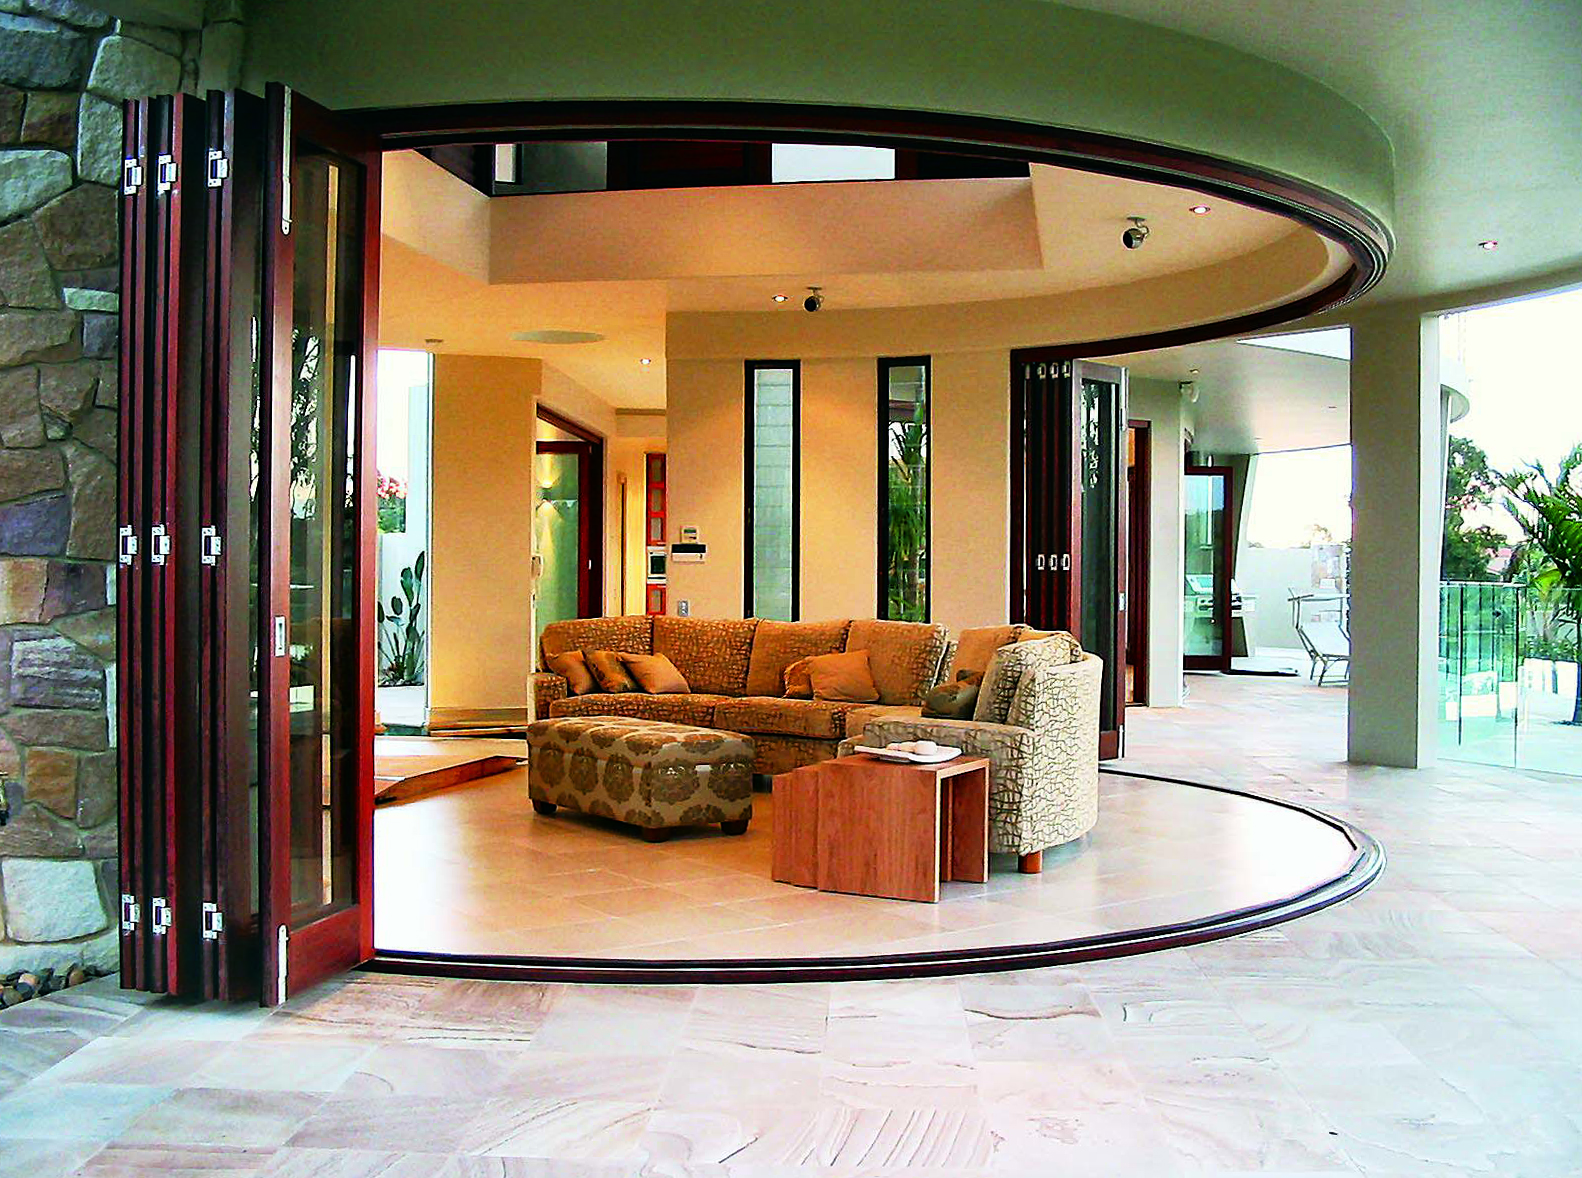 Folding Patio Doors by Euro-Wall - Folding Patio Doors